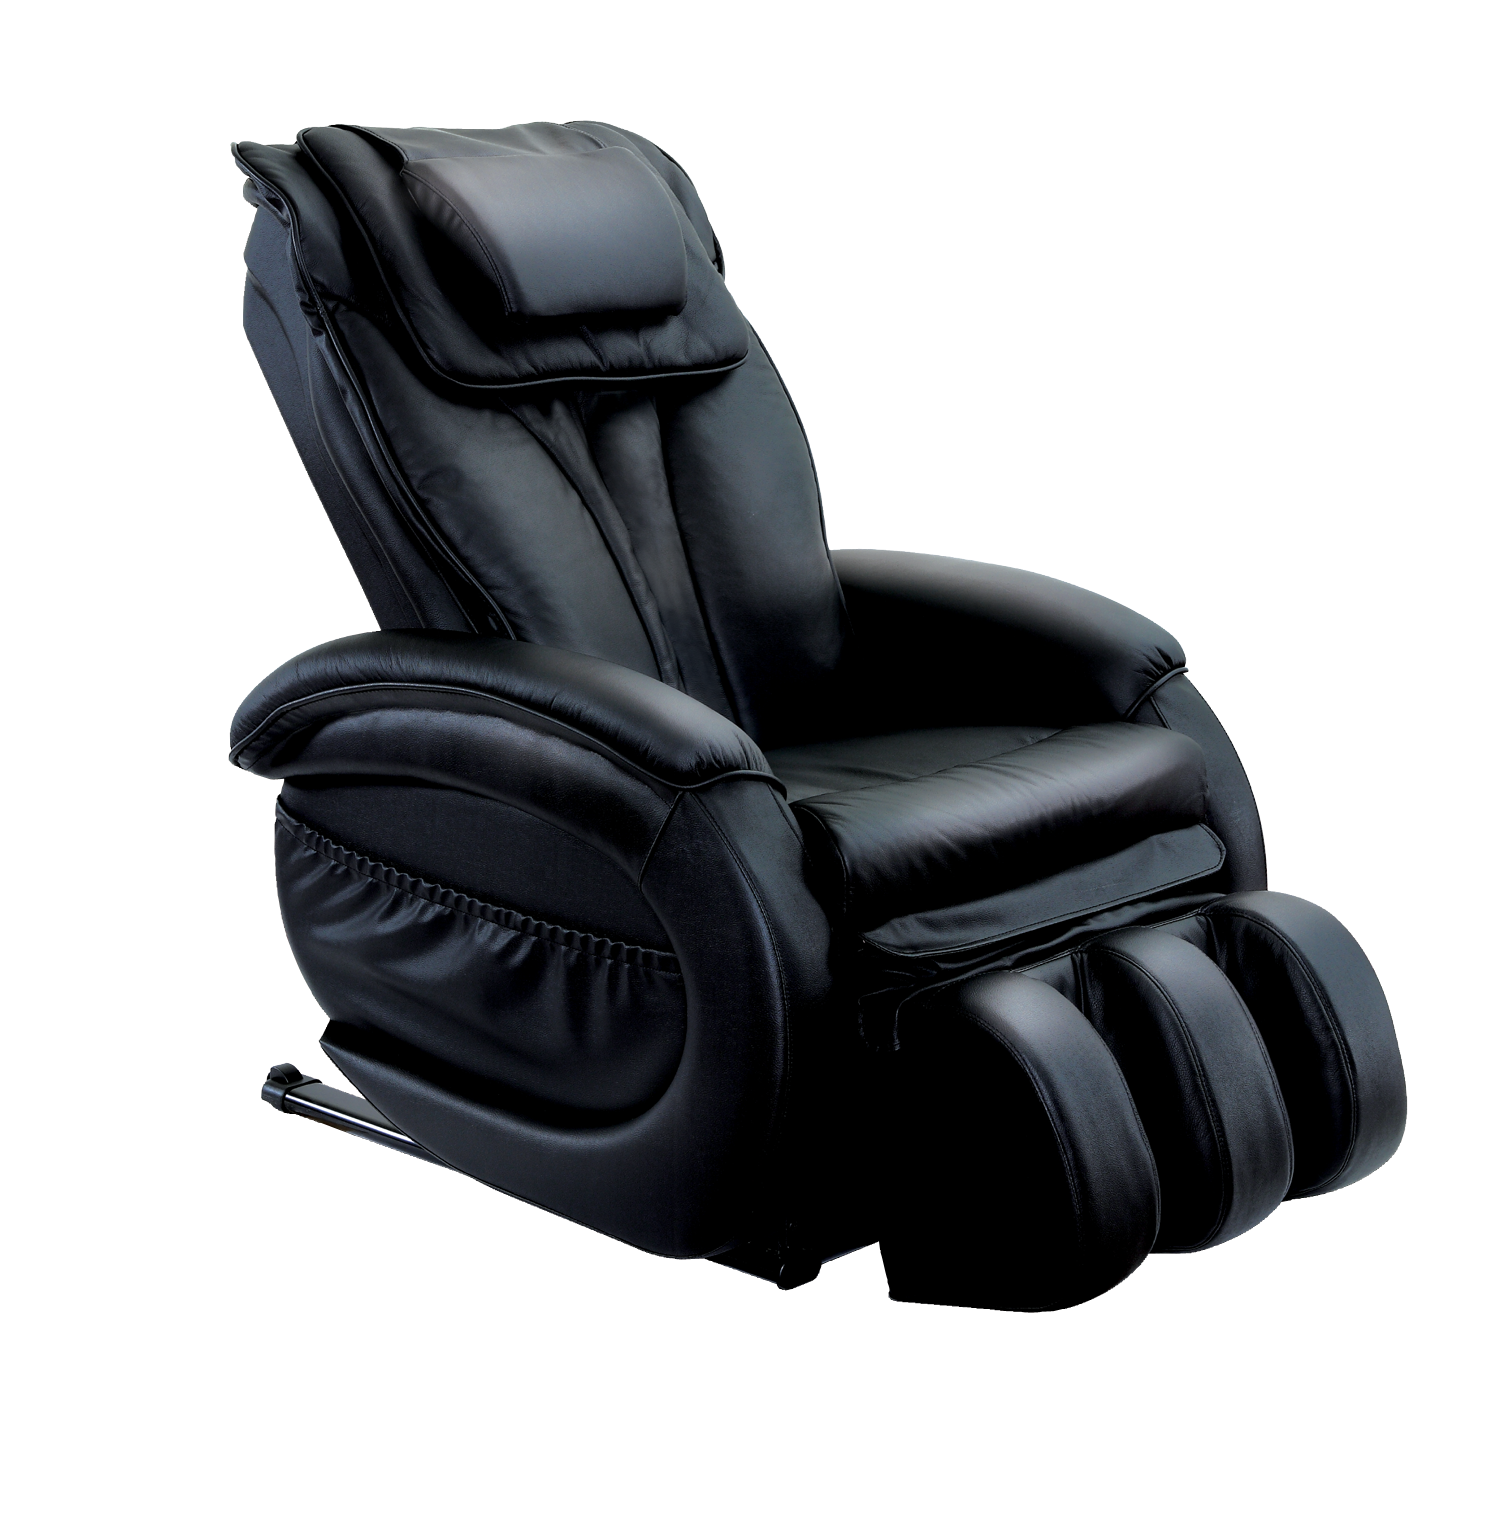 What to Look For Massage Chair Intensity